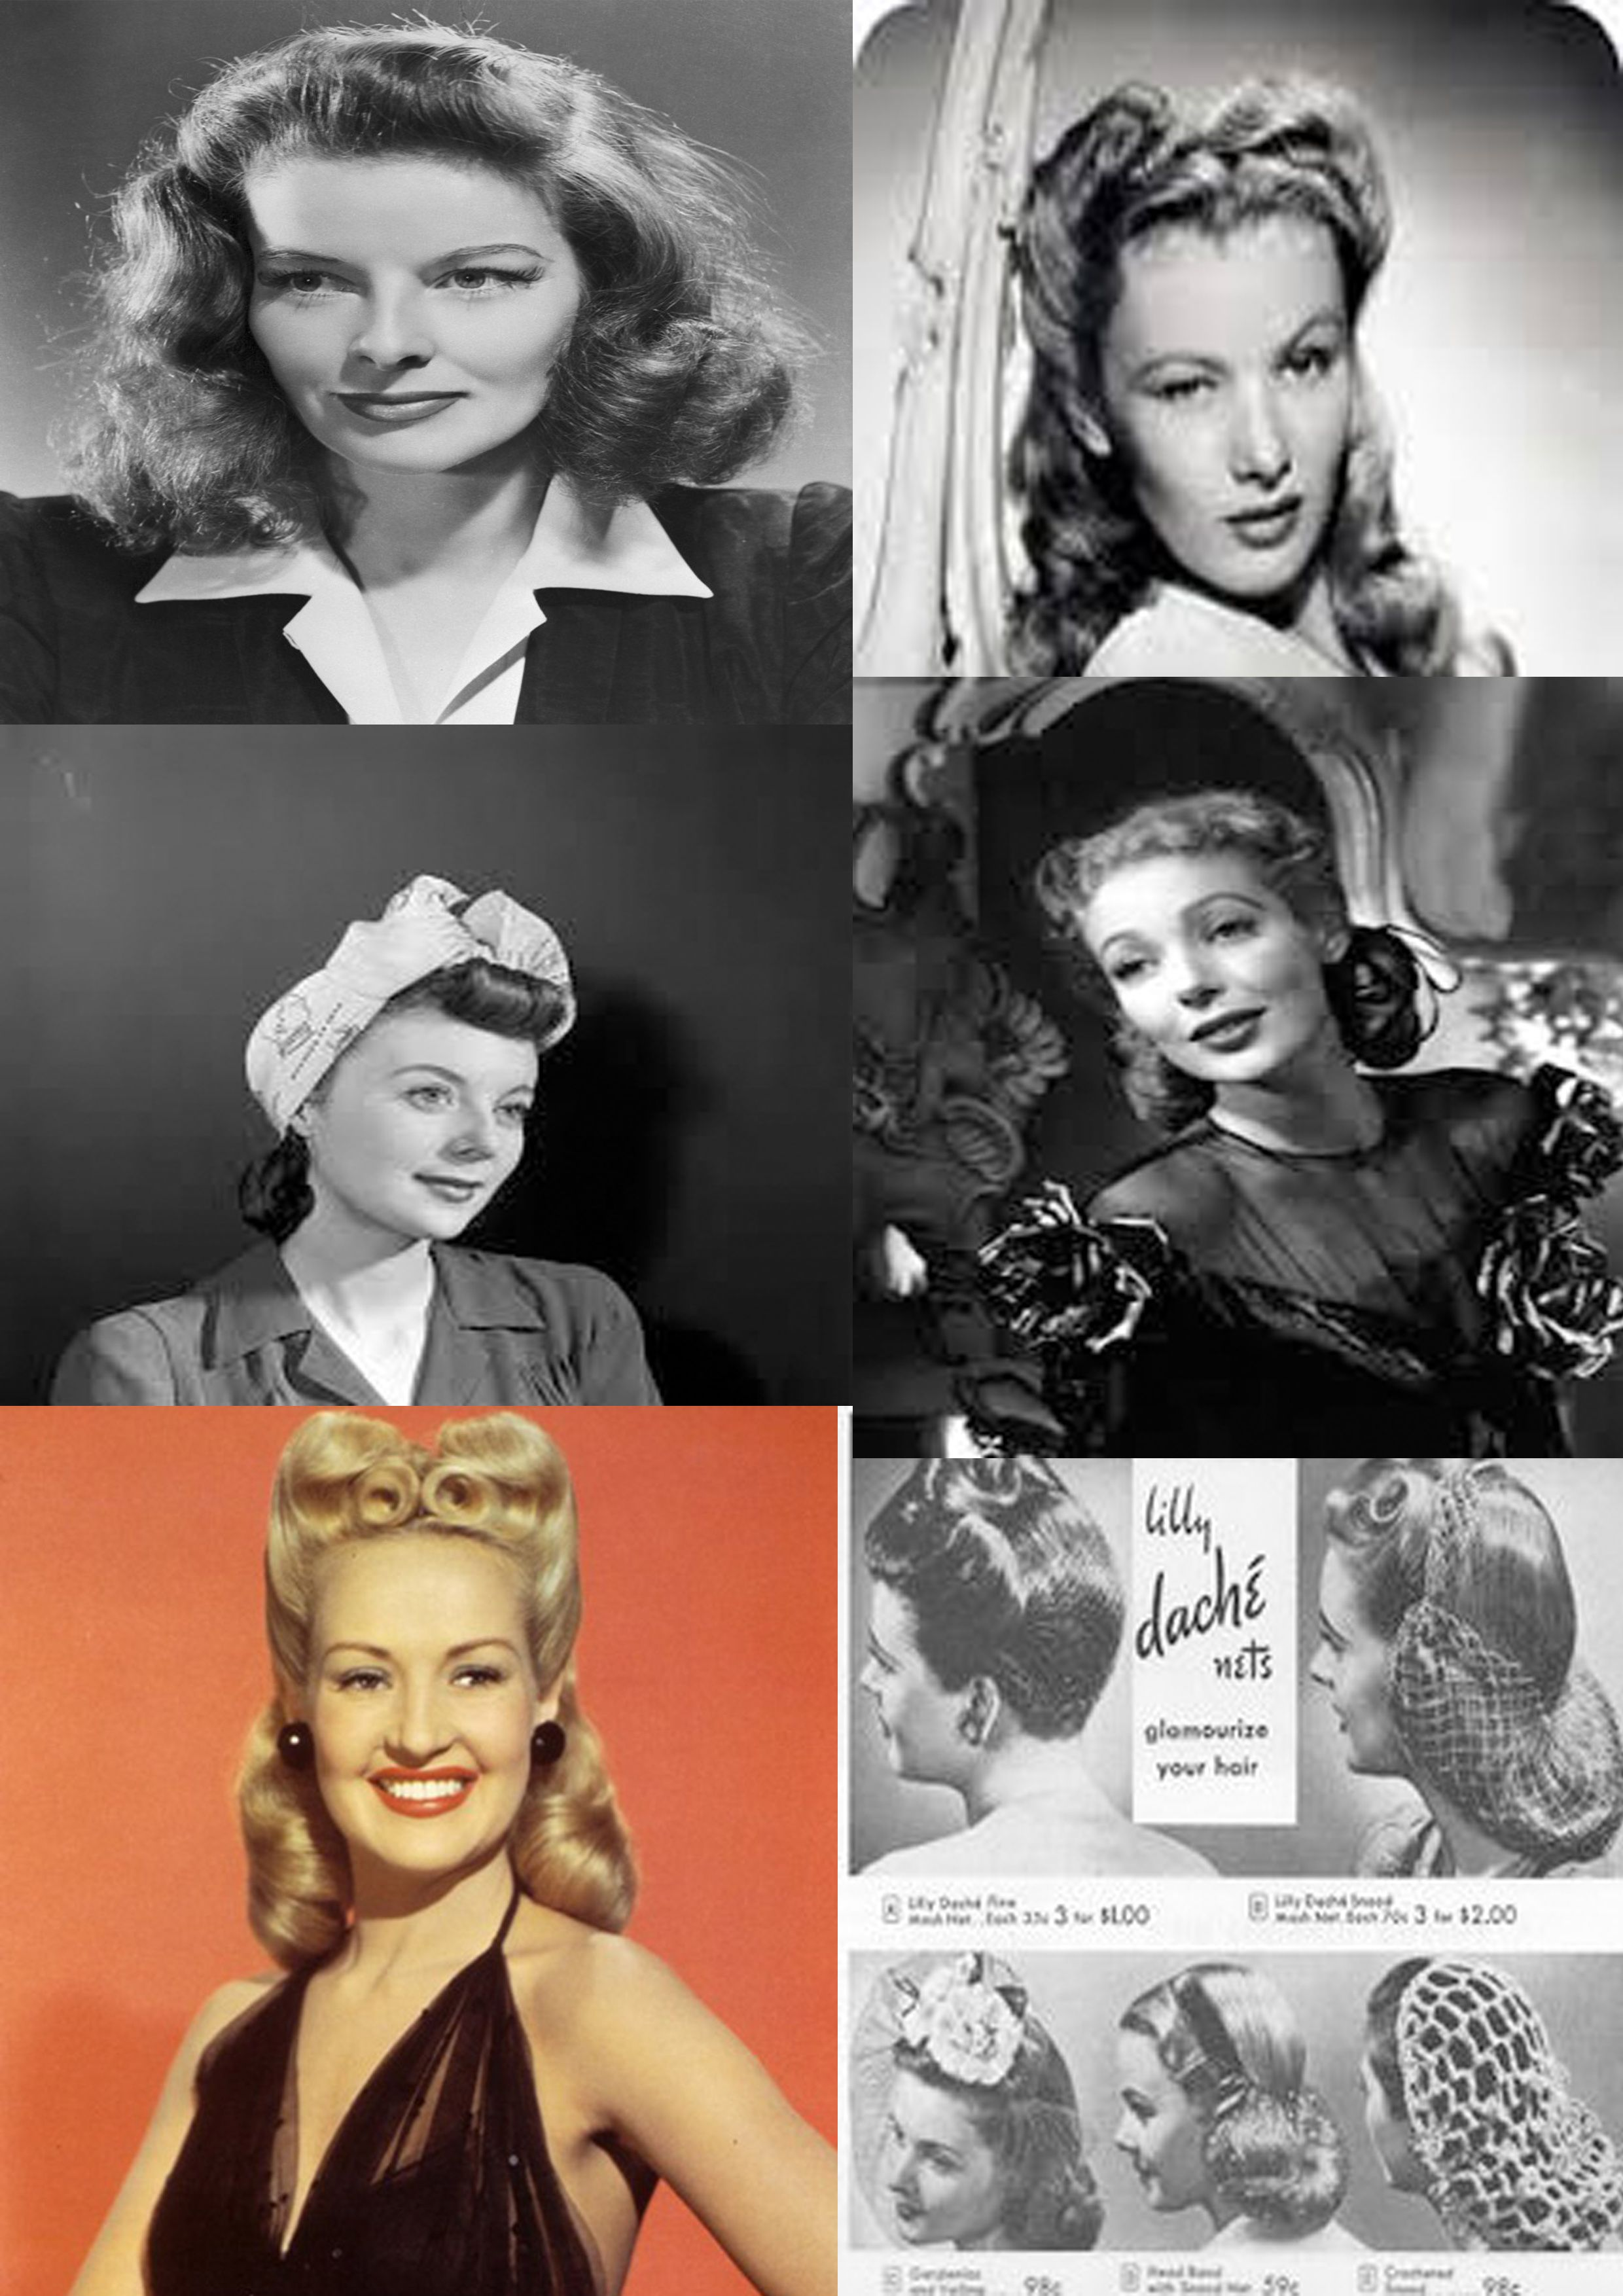 s hairstyle perfect coiffed roll and victory roll were most